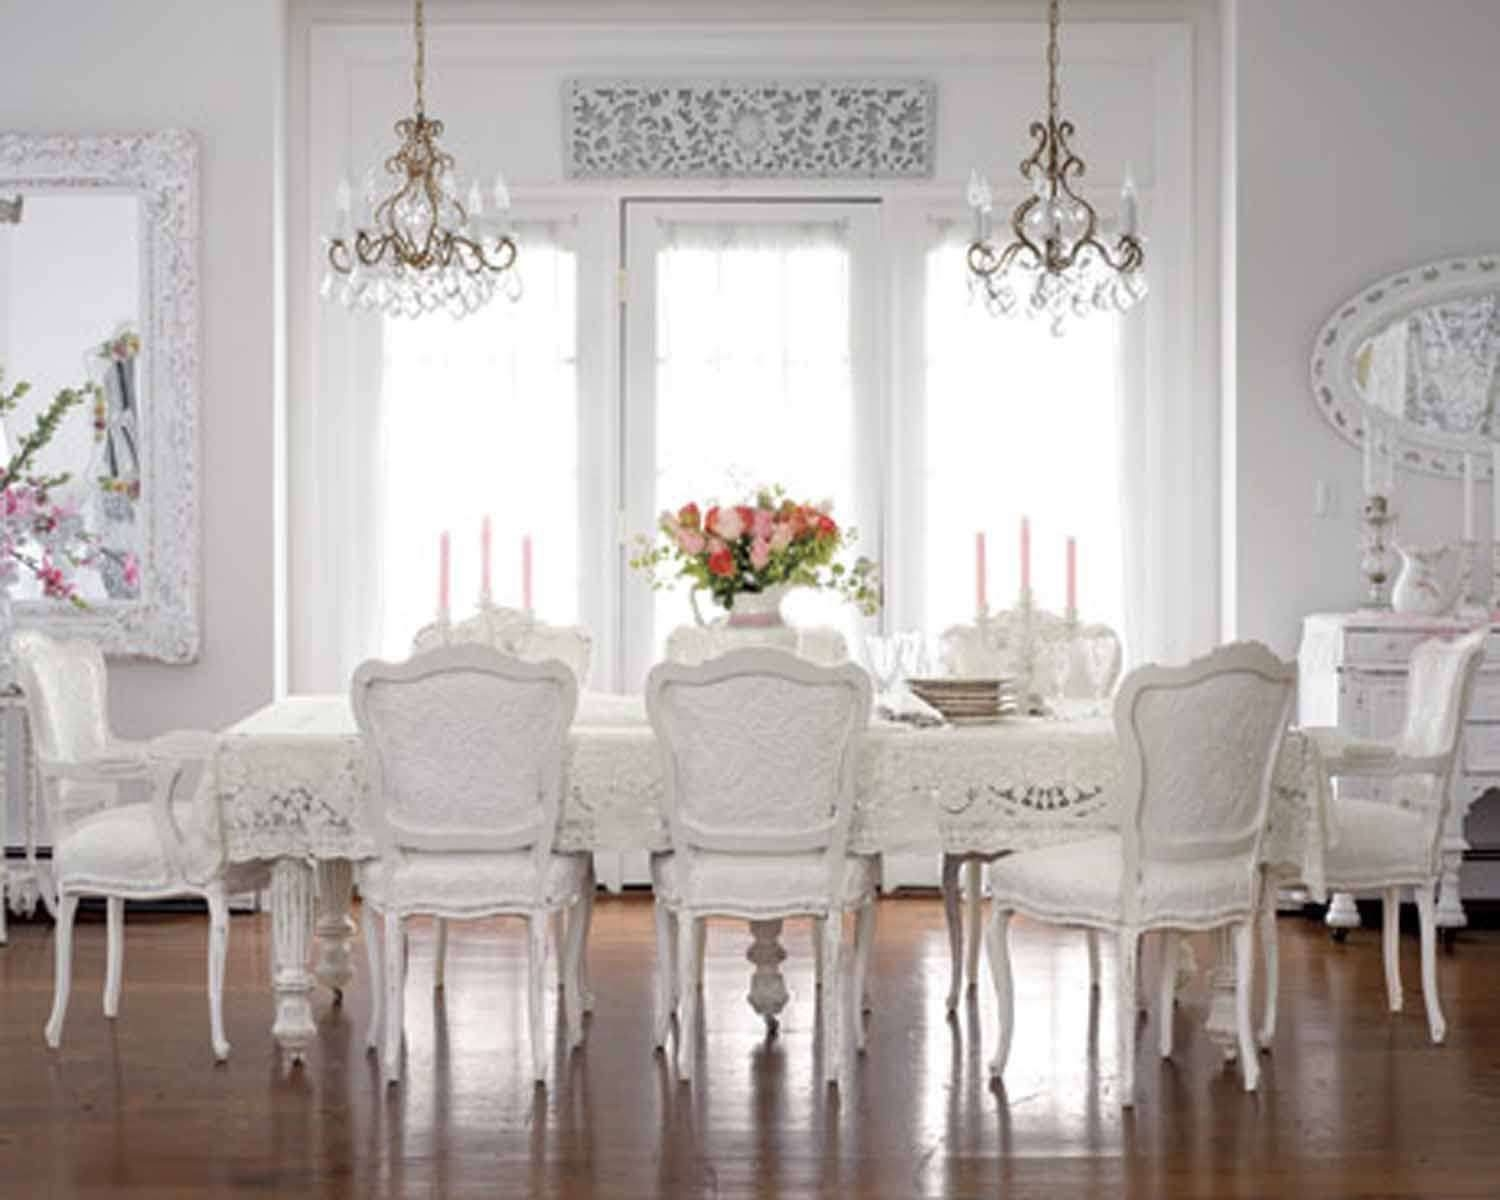 Soothing Shab Chic Dining Room With White Walls And Small With Regard To Small Shabby Chic Chandelier (Image 15 of 15)